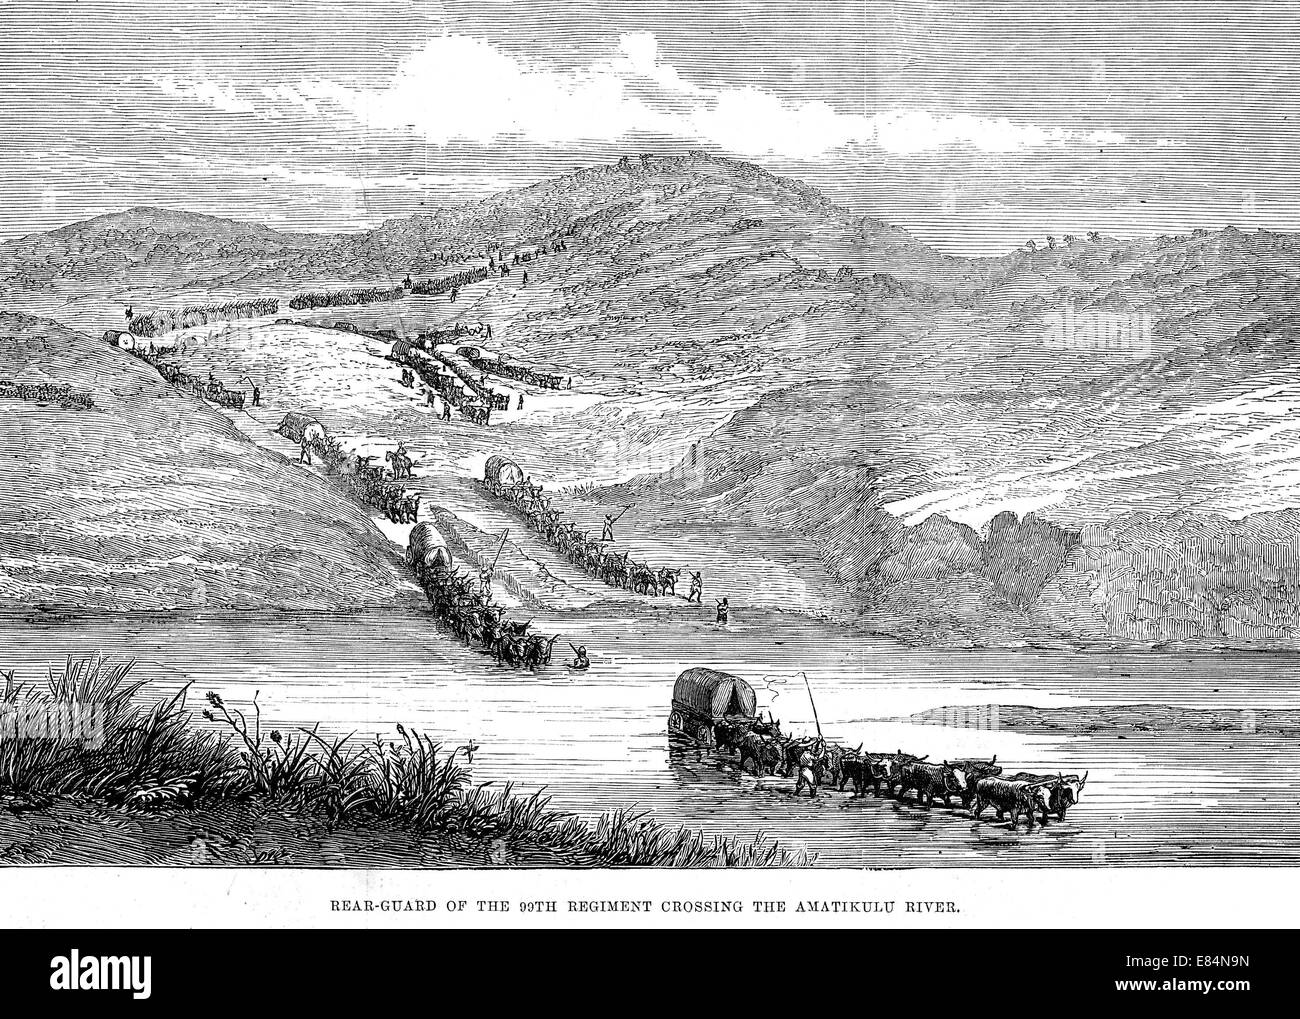 ZULU WAR 1879 Rear-guard of the 99th Regiment cross the Amatikulu River as shown in th Illustrated London News on - Stock Image